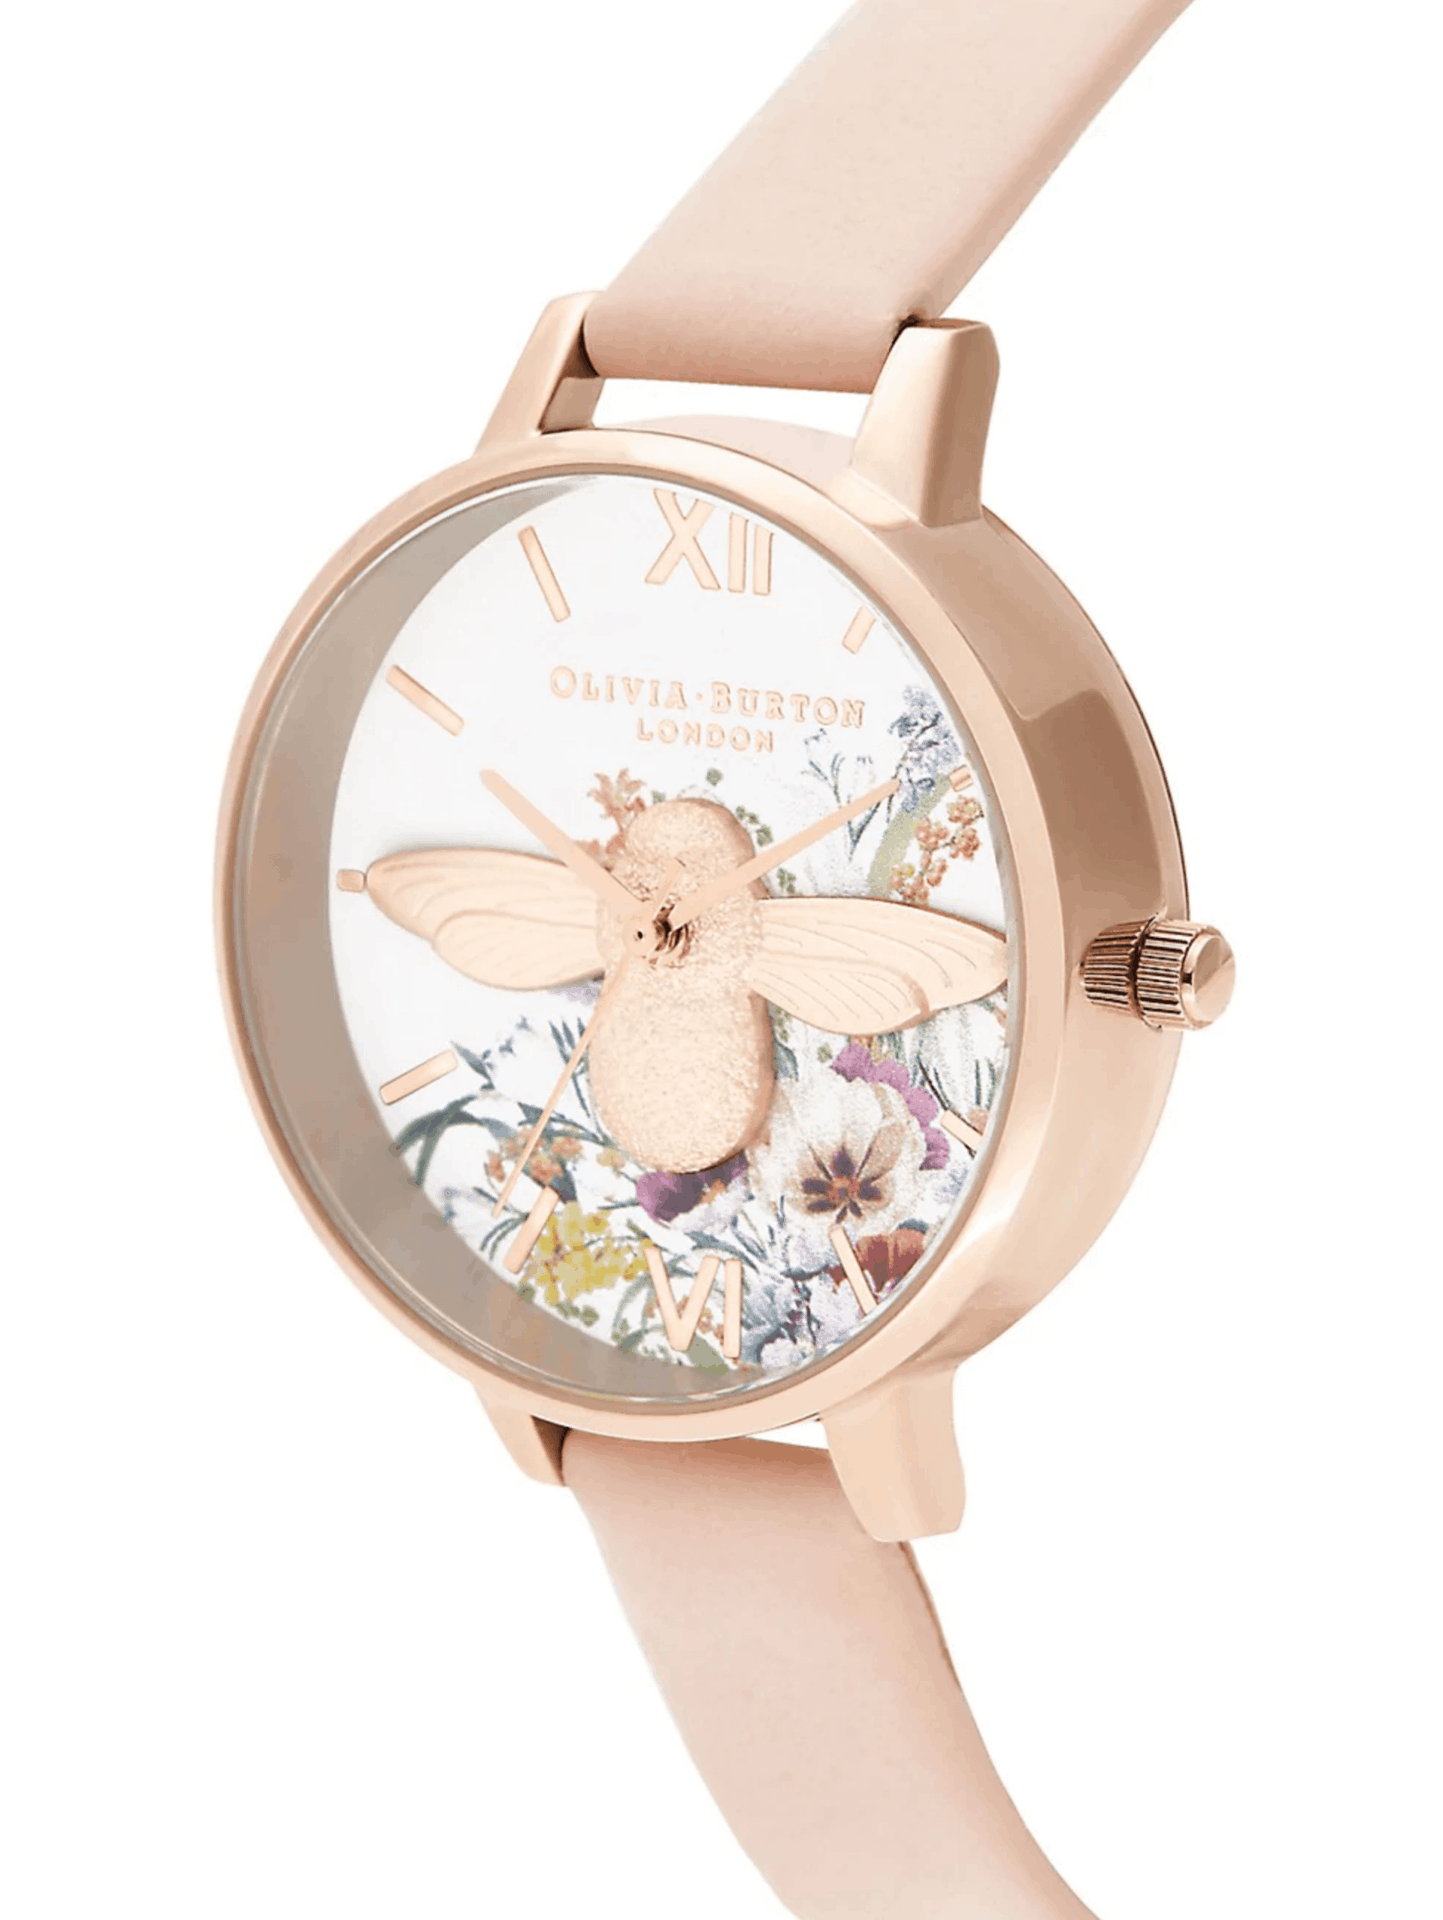 Olivia Burton London | Enchanted Garden